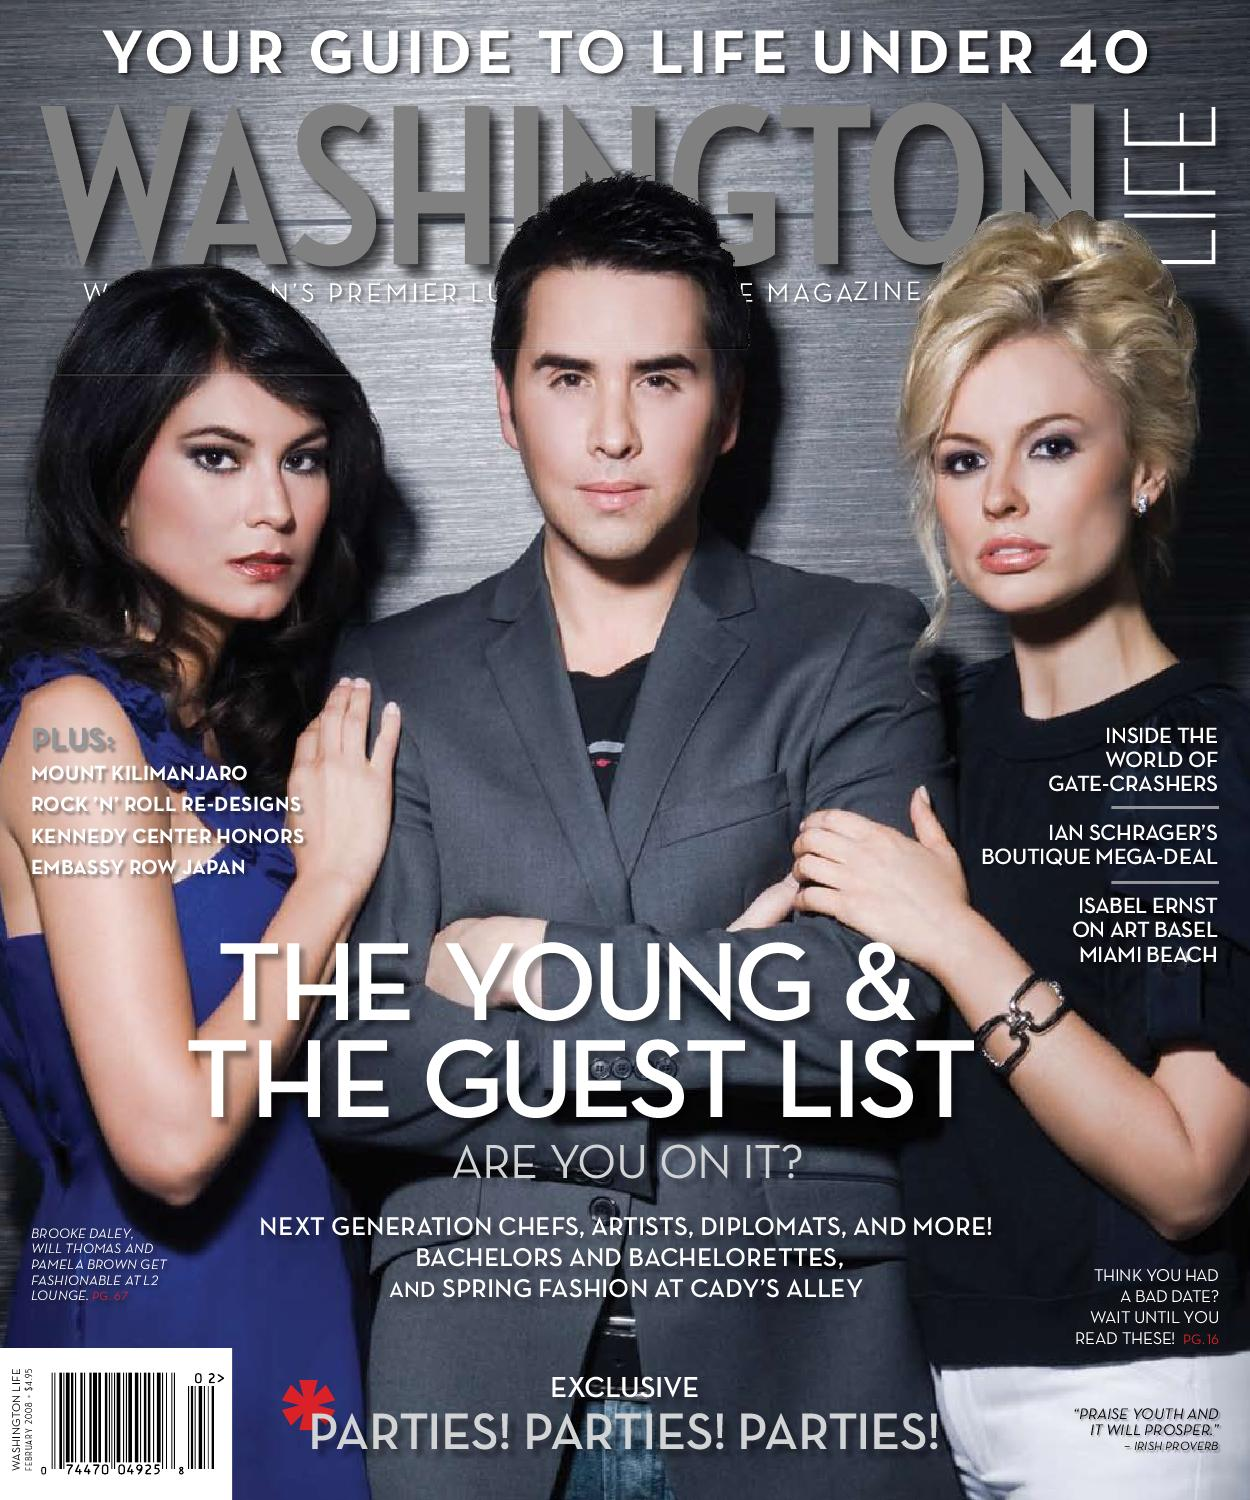 Washington February Magazine 2008 By Life 0xTrzn0wAq